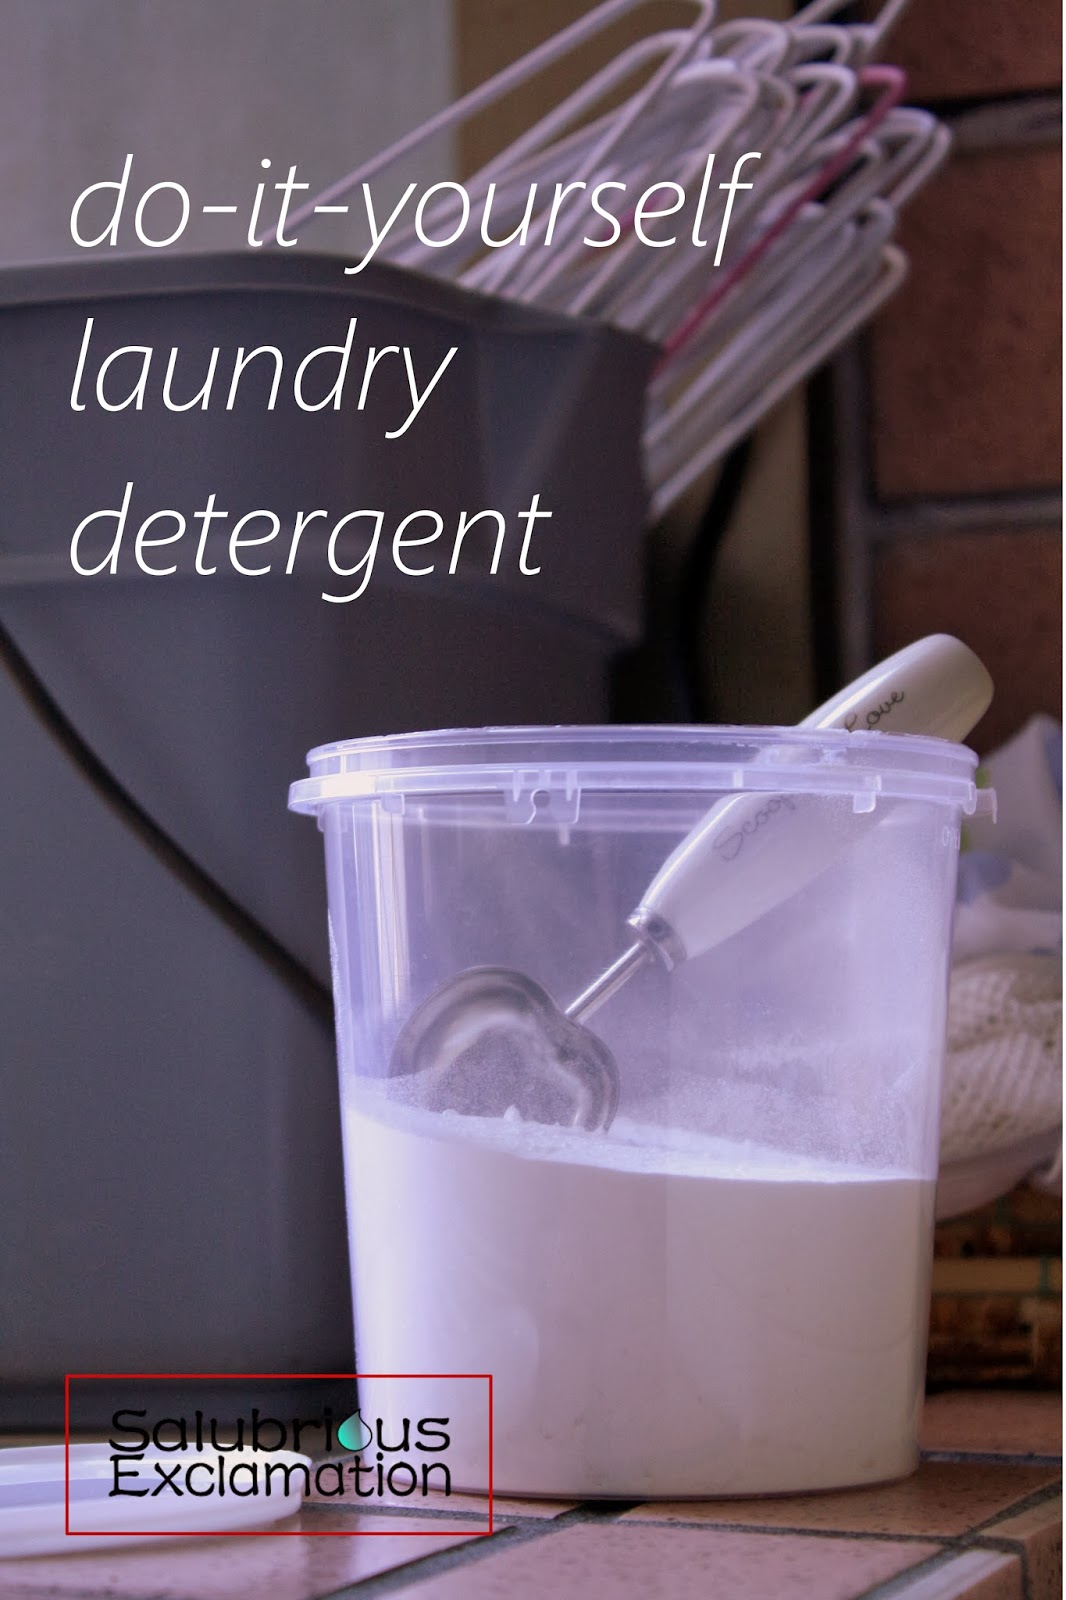 Salubrious Exclamation Make Your Own Natural Laundry